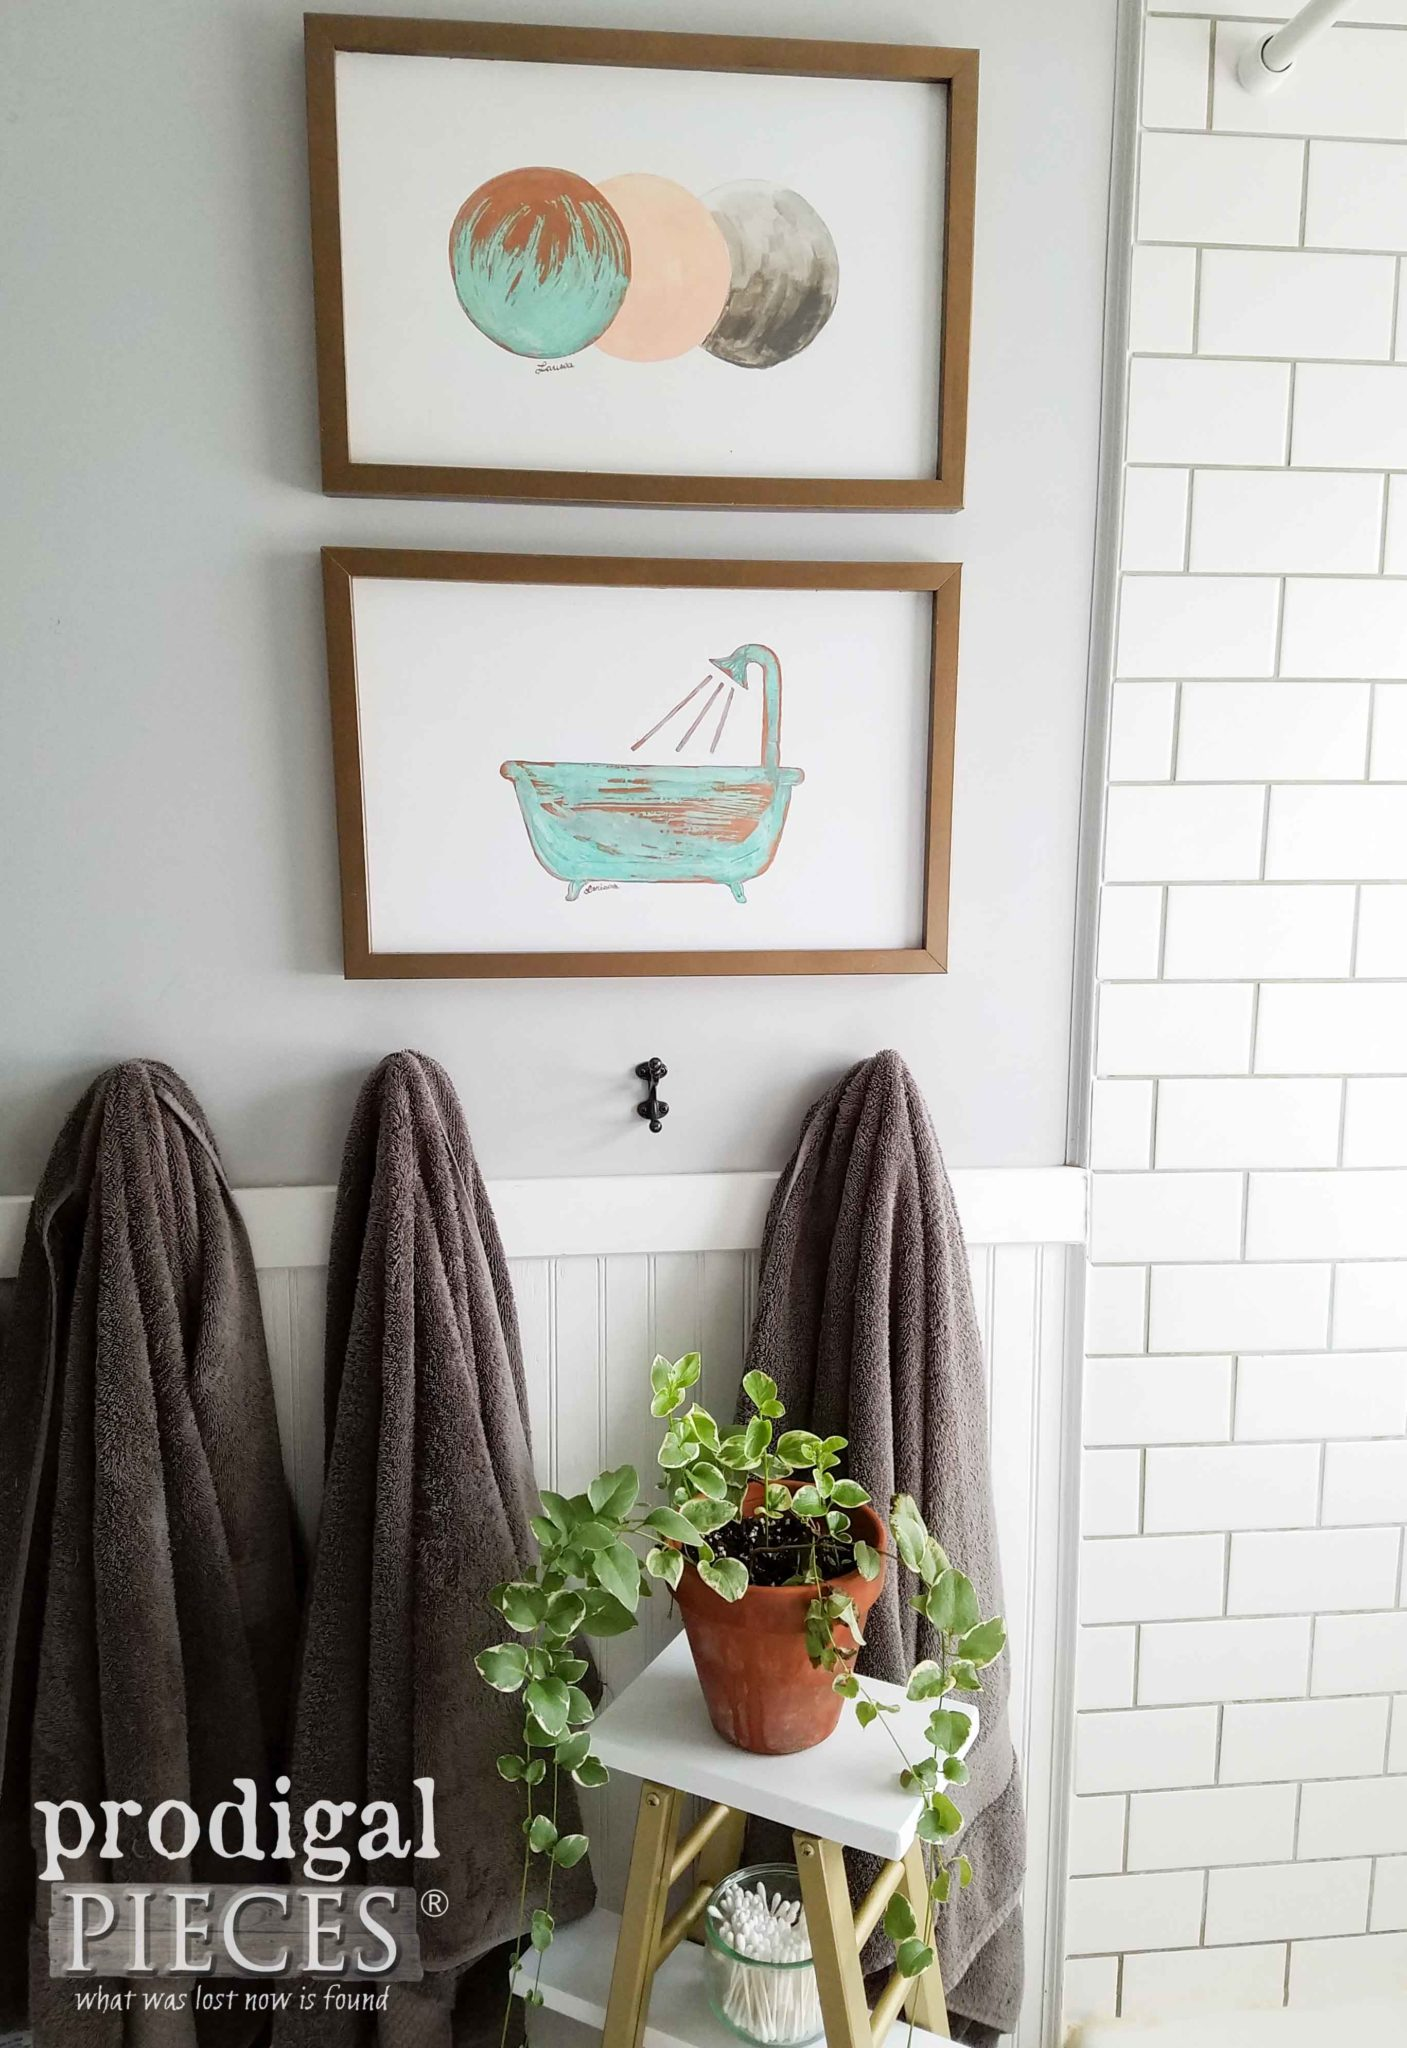 Boho Chic Bathroom with DIY Copper Wall Art by Prodigal Pieces | prodigalpieces.com